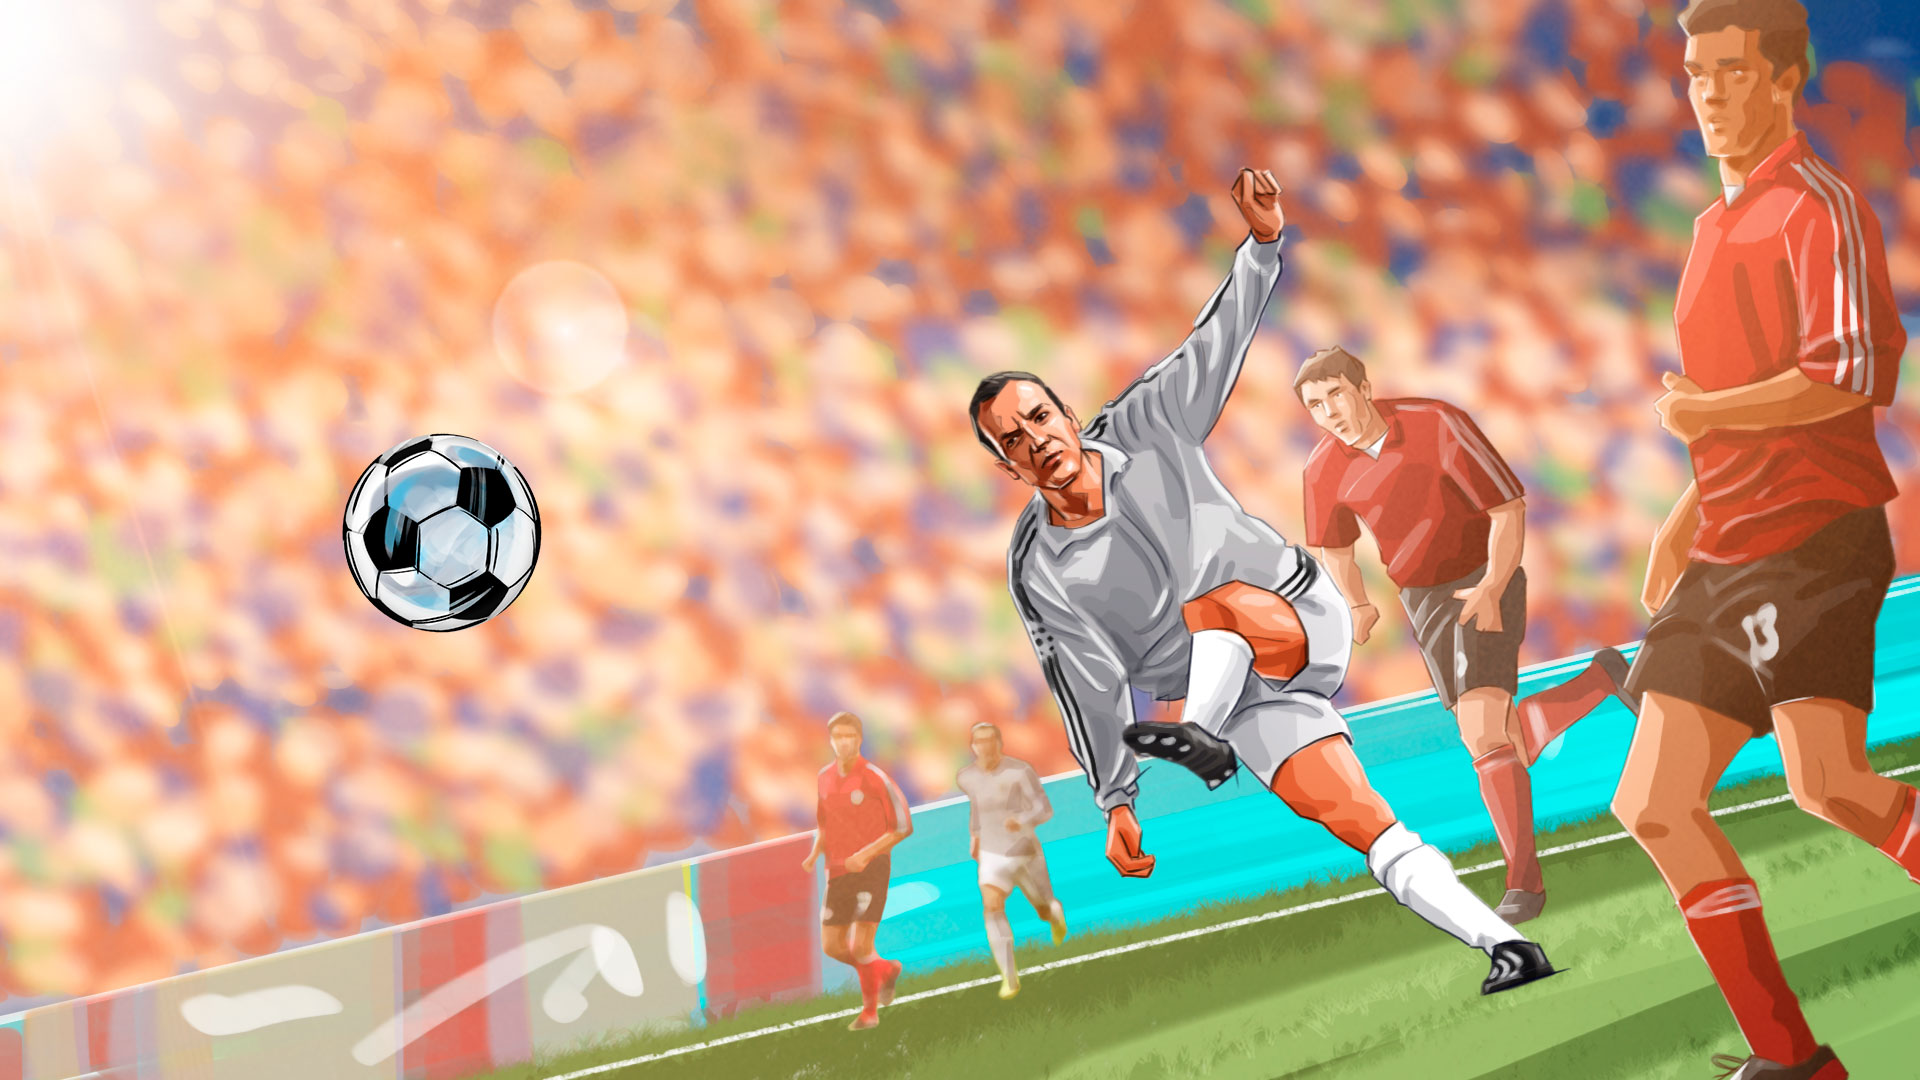 soccer kick master illustration, 'Famous matches - illustrations for web game